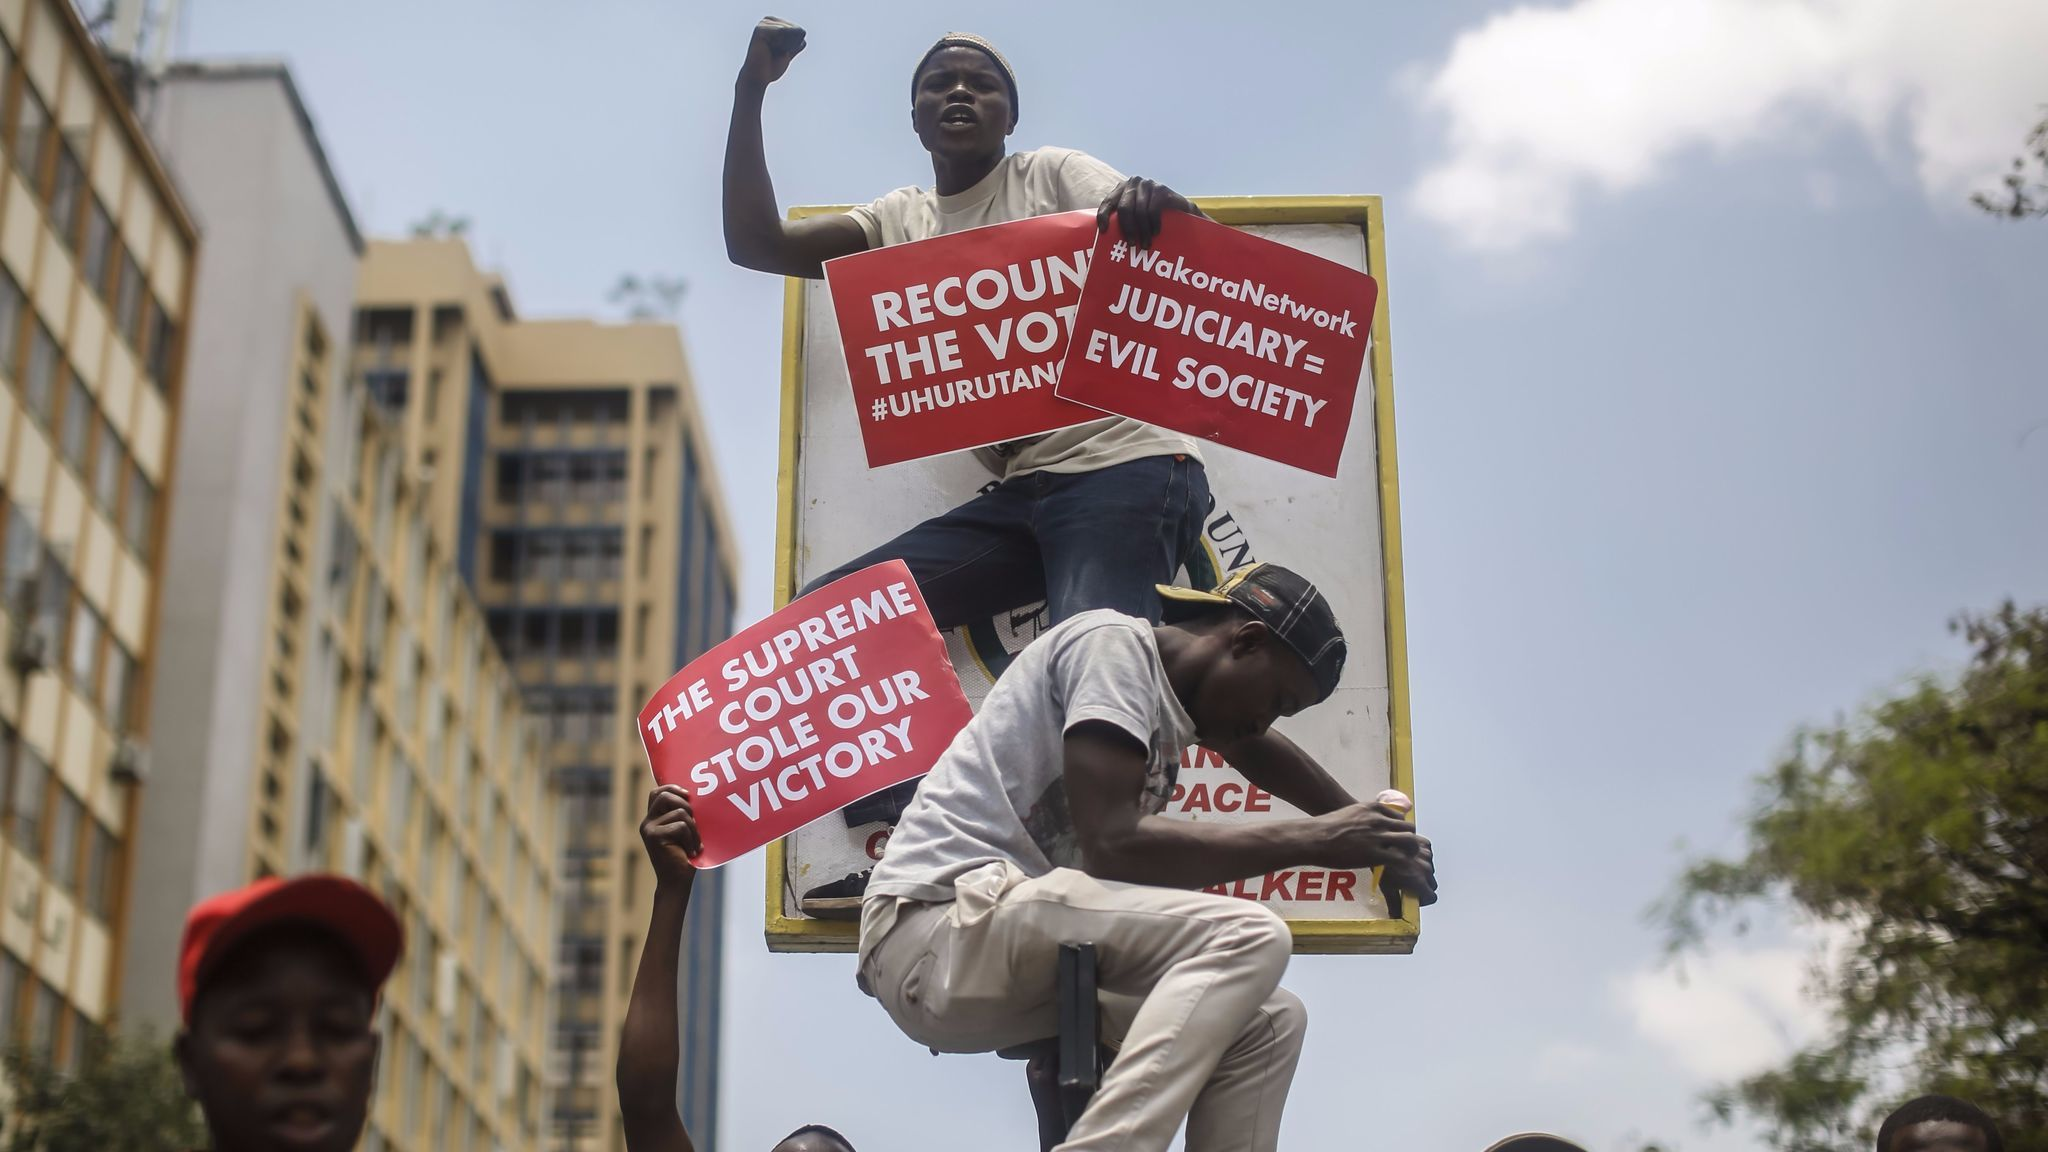 Supporters of Kenyan President Uhuru Kenyatta protest Tuesday against the Supreme Court, which overturned the Aug. 8 presidential election